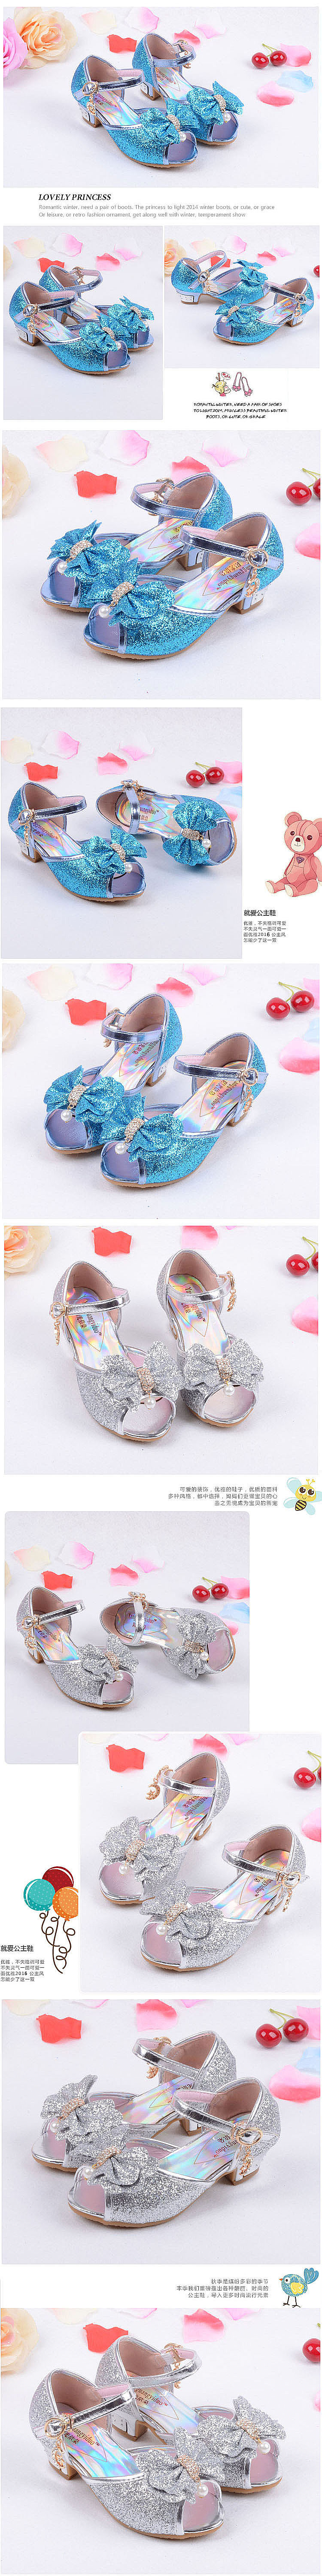 159 225cm Girls High Heels Sandals Children 3 4 5 6 7 8 9 Years Sweater Anak Laki Rbj347 Old Blue Gold Pink Silver Anna Elsa Sofia Princess Shoes In From Mother